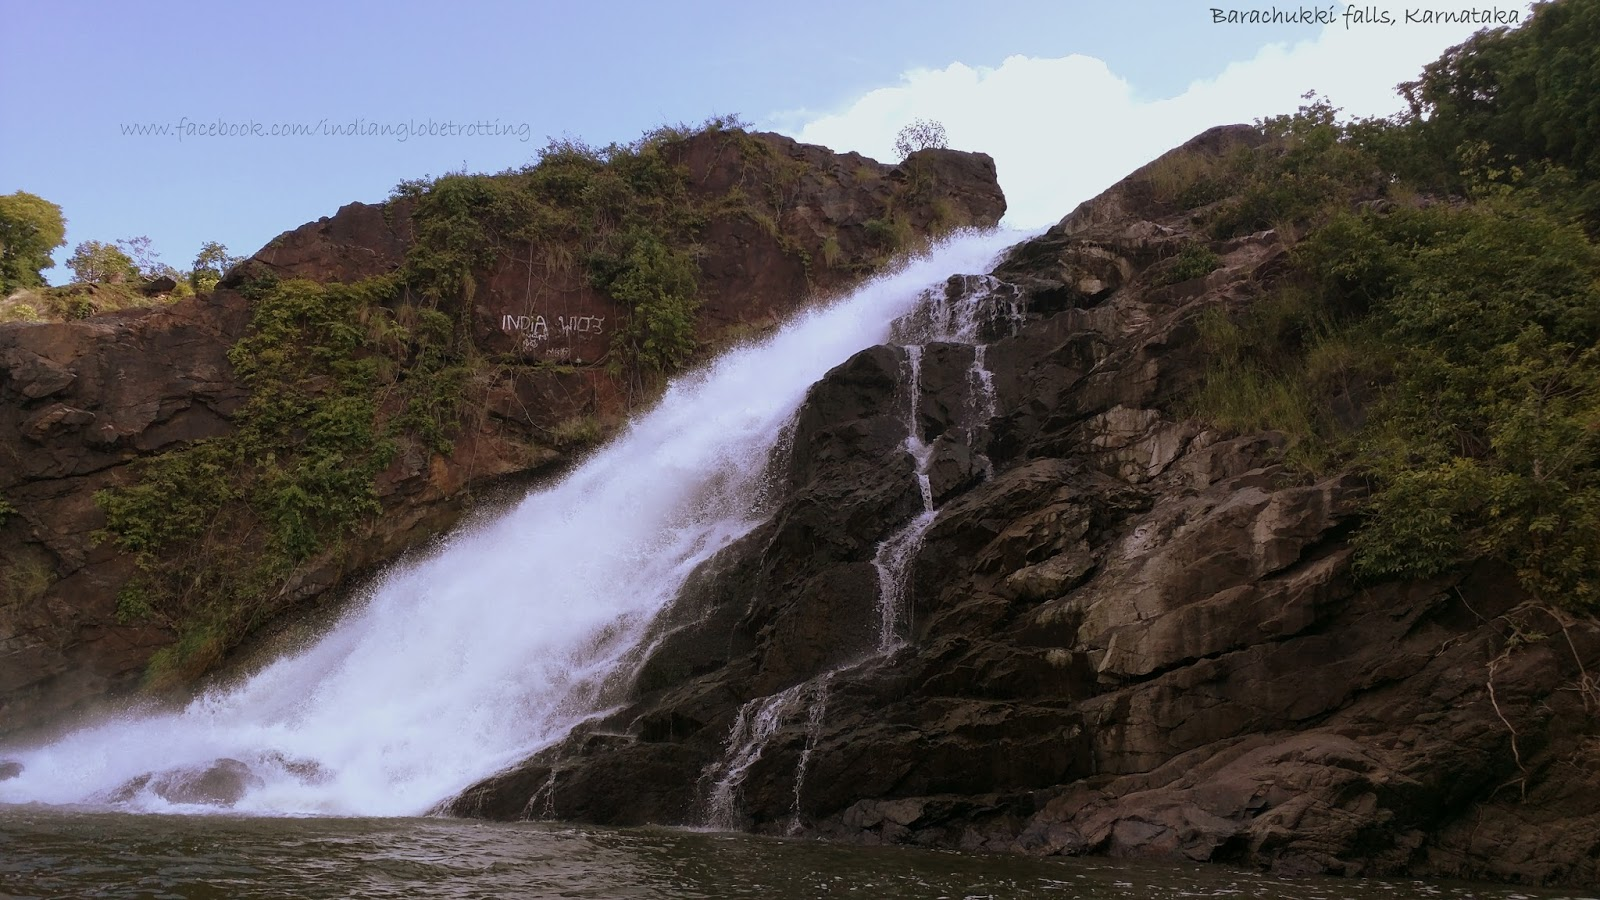 Barachukki Falls during a coracle ride